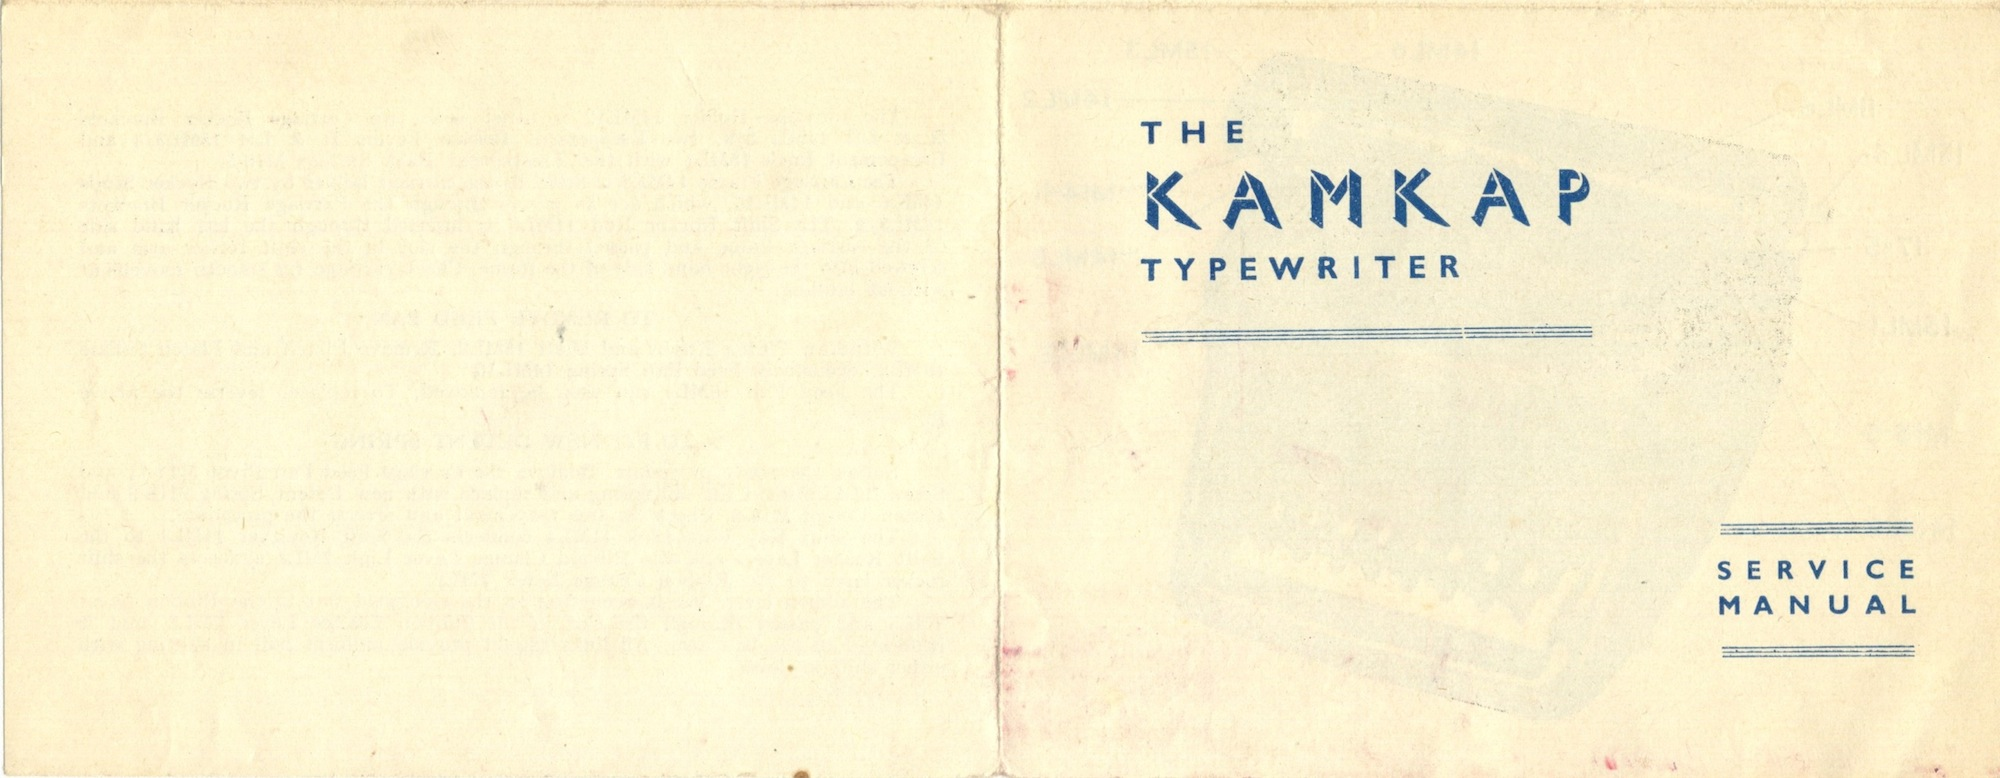 Kamkap Manual 01